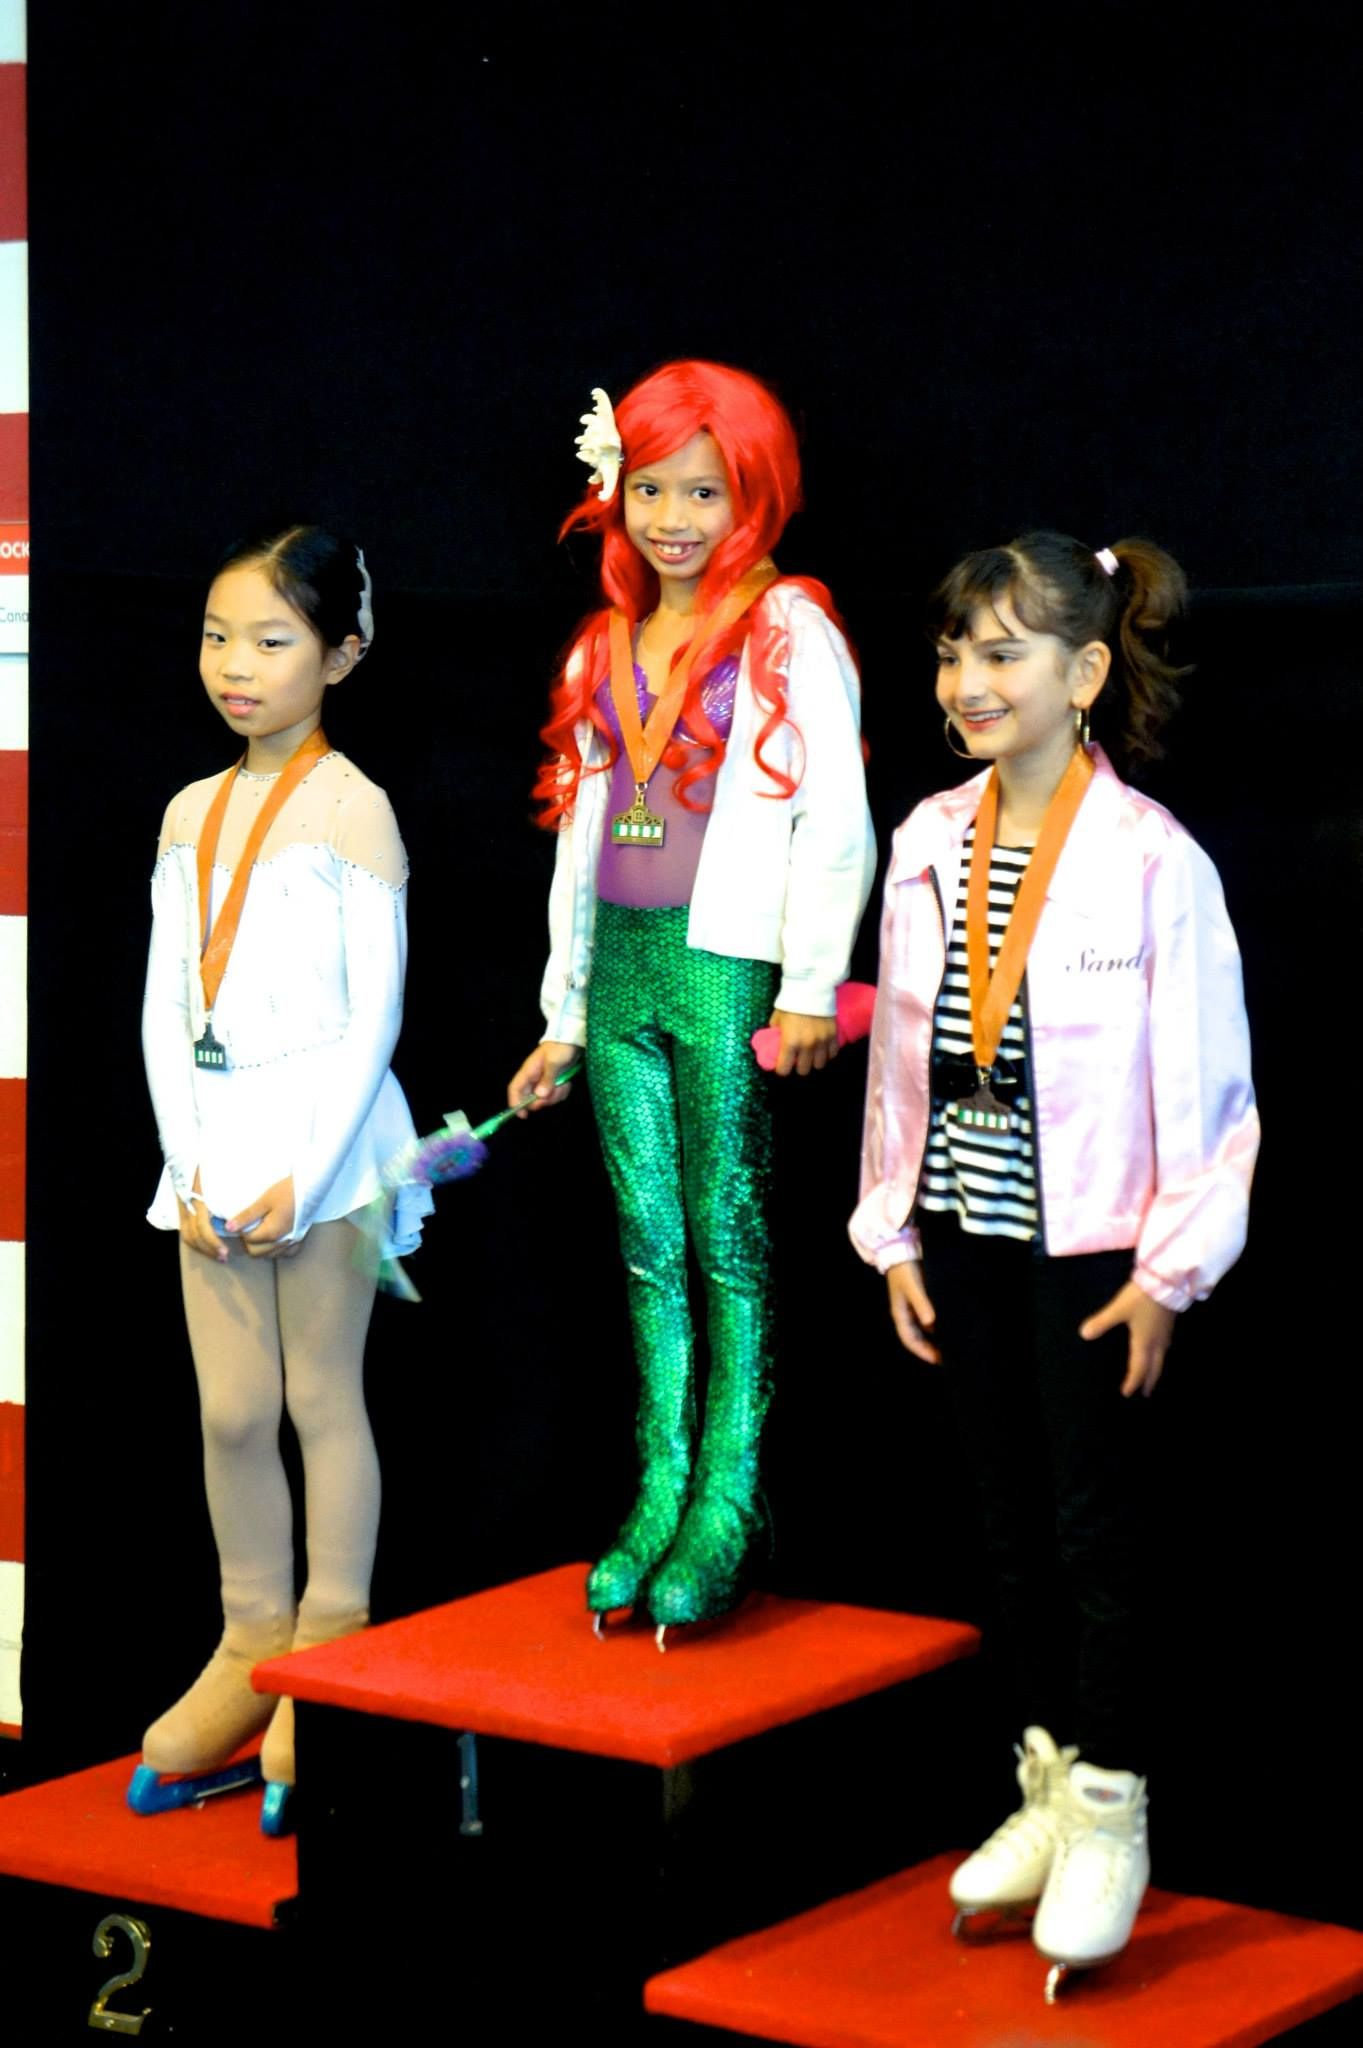 Ariel with a GOLD medal